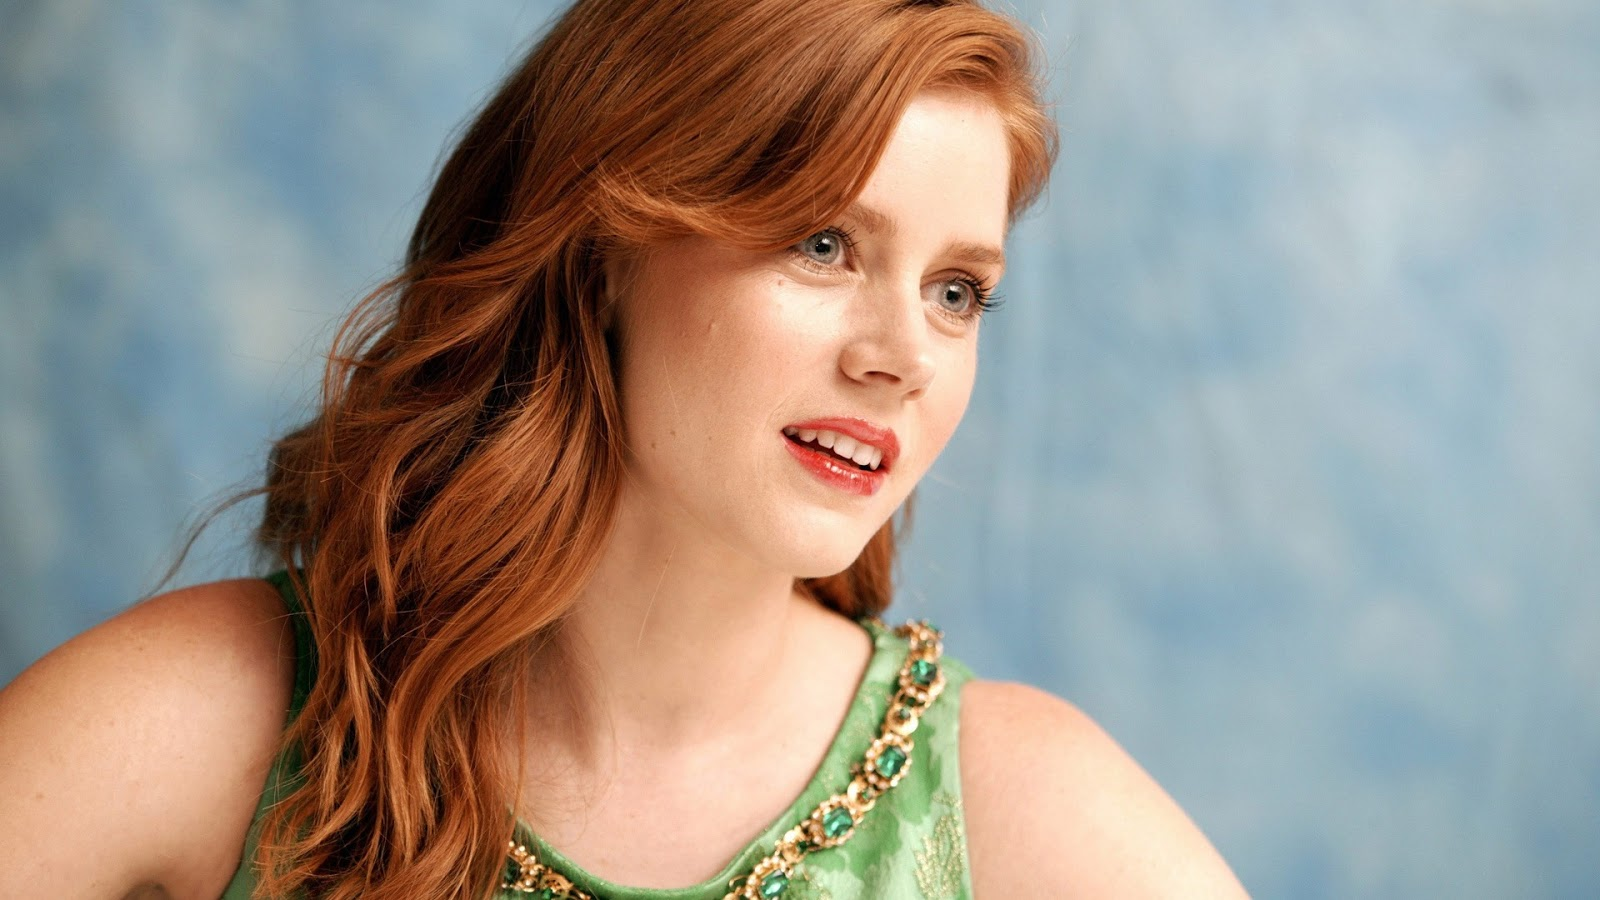 Celebrities hd wallpapers amy adams super hot new hd high - High resolution wallpaper celebrity ...